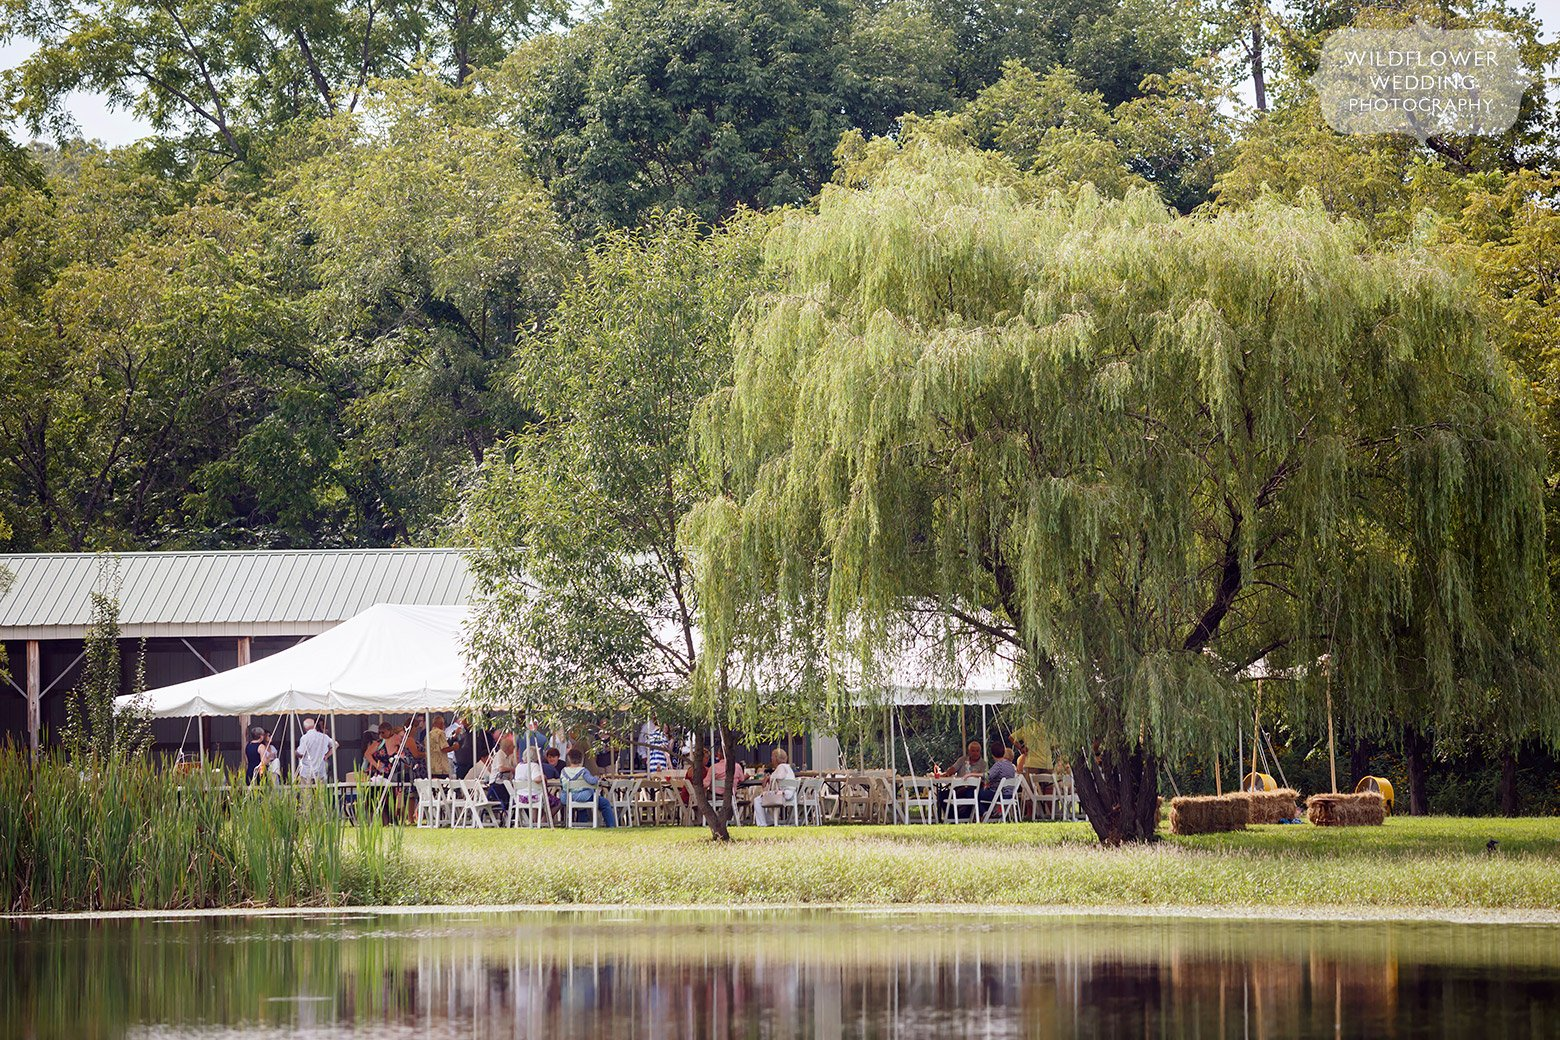 Backyard wedding on a pond in St. James, MO.